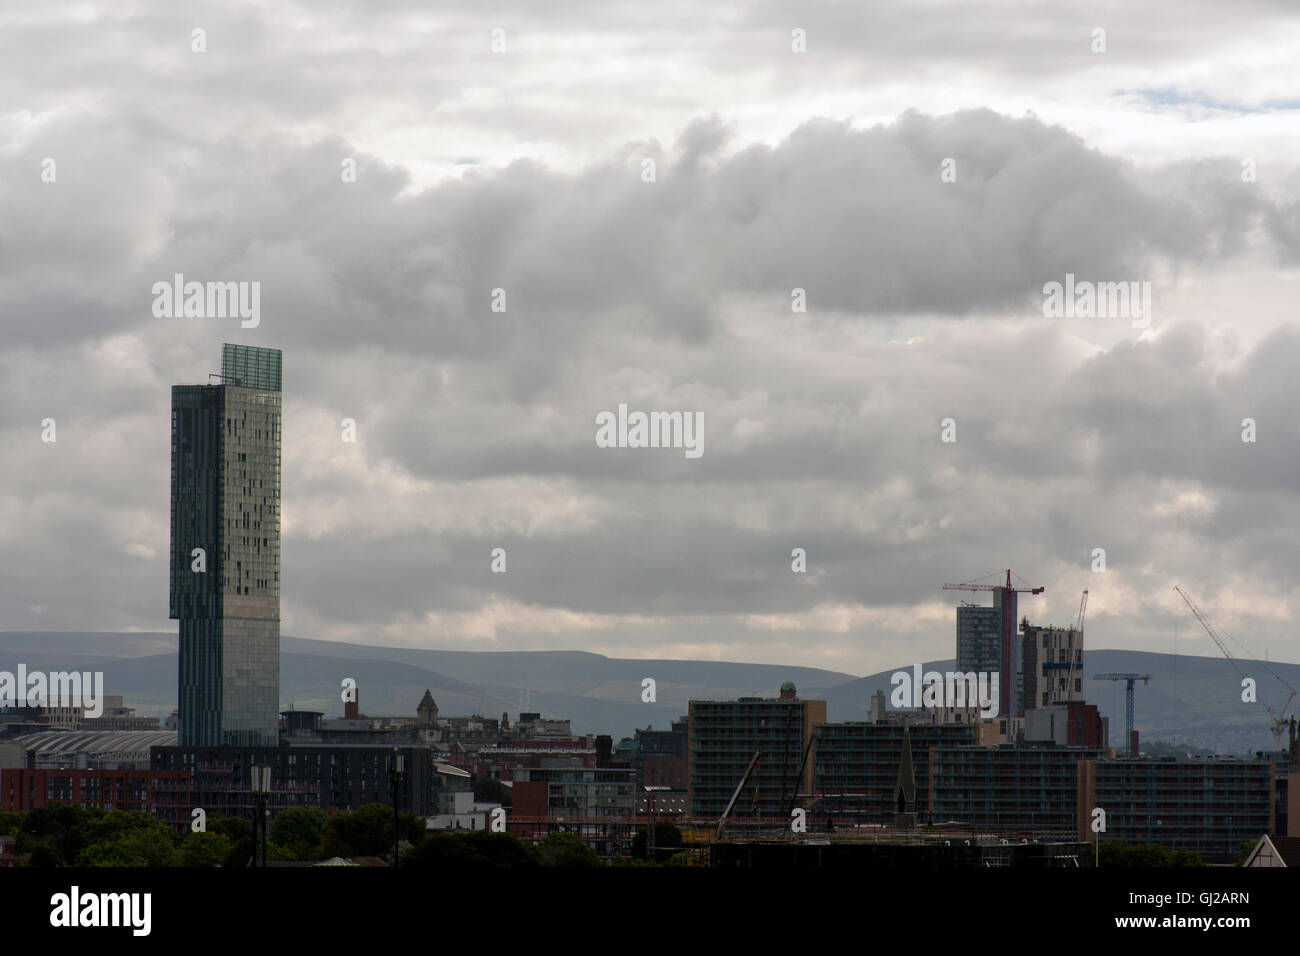 Manchester Skyline from Salford Quays Looking to City Centre - Stock Image